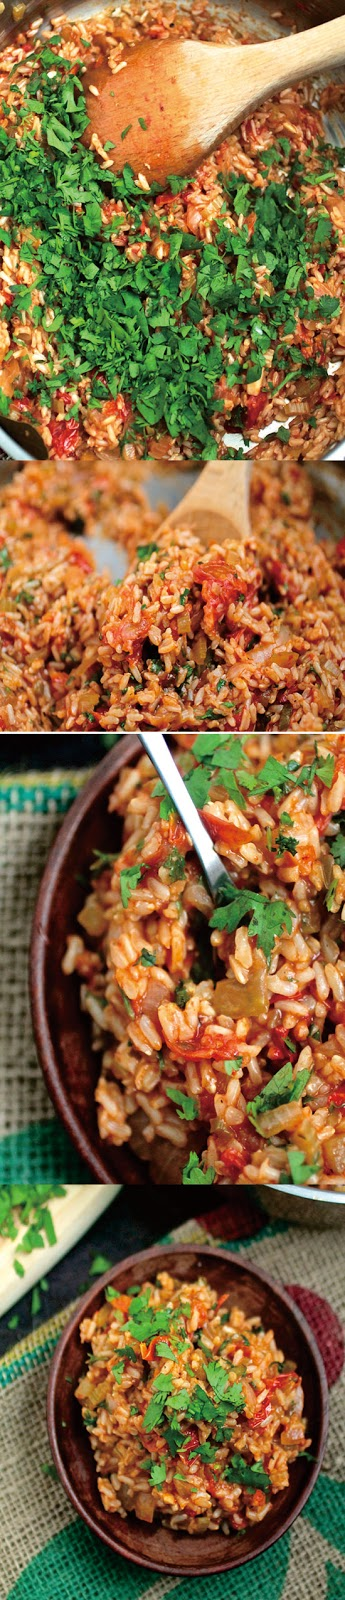 SPICY VEGAN JAMBALAYA HEALTHY RECIPE